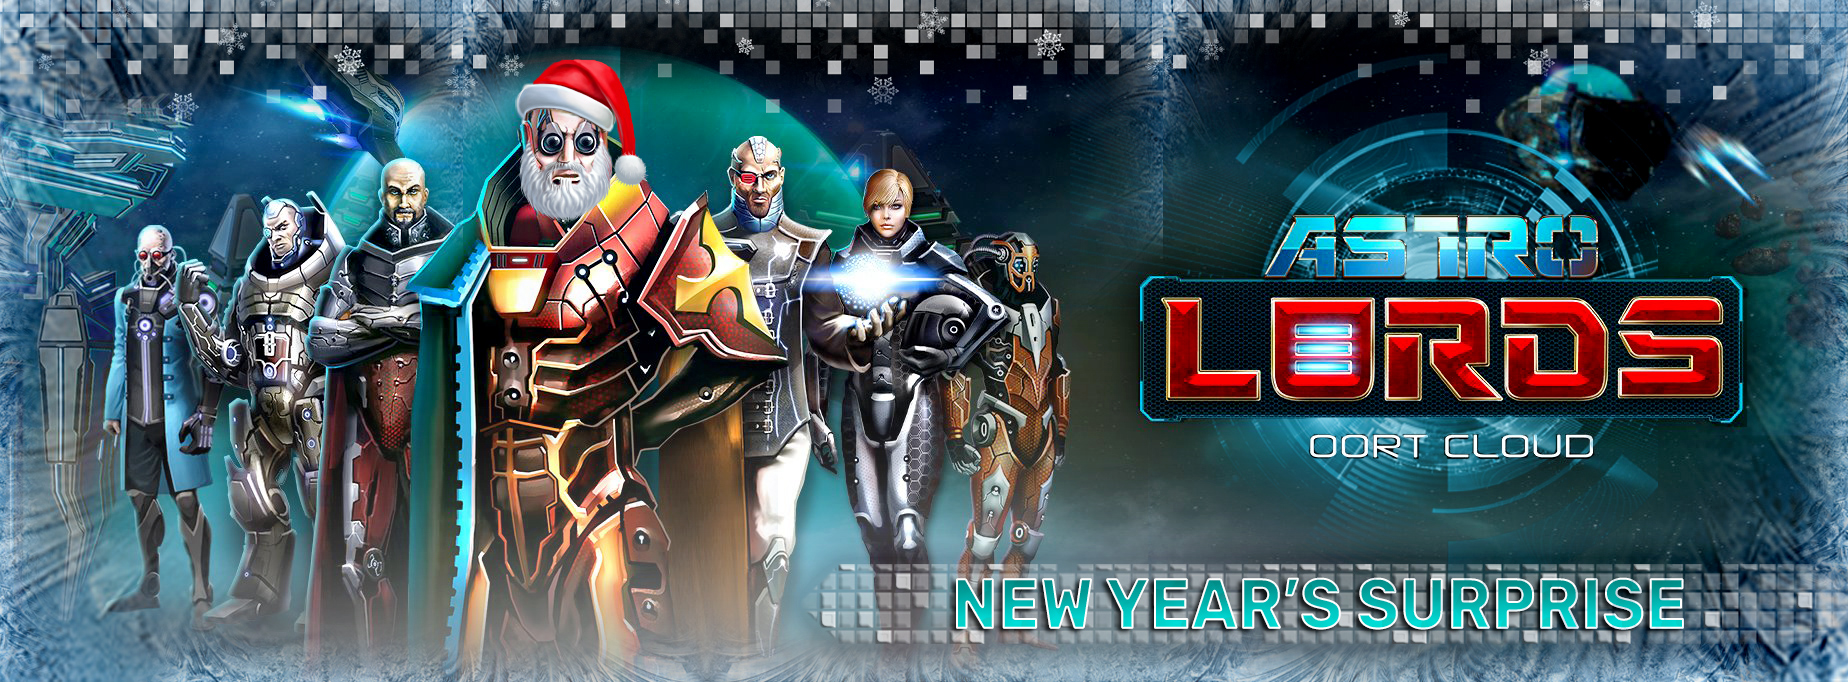 astrolords new year 2020 game strategy surprise